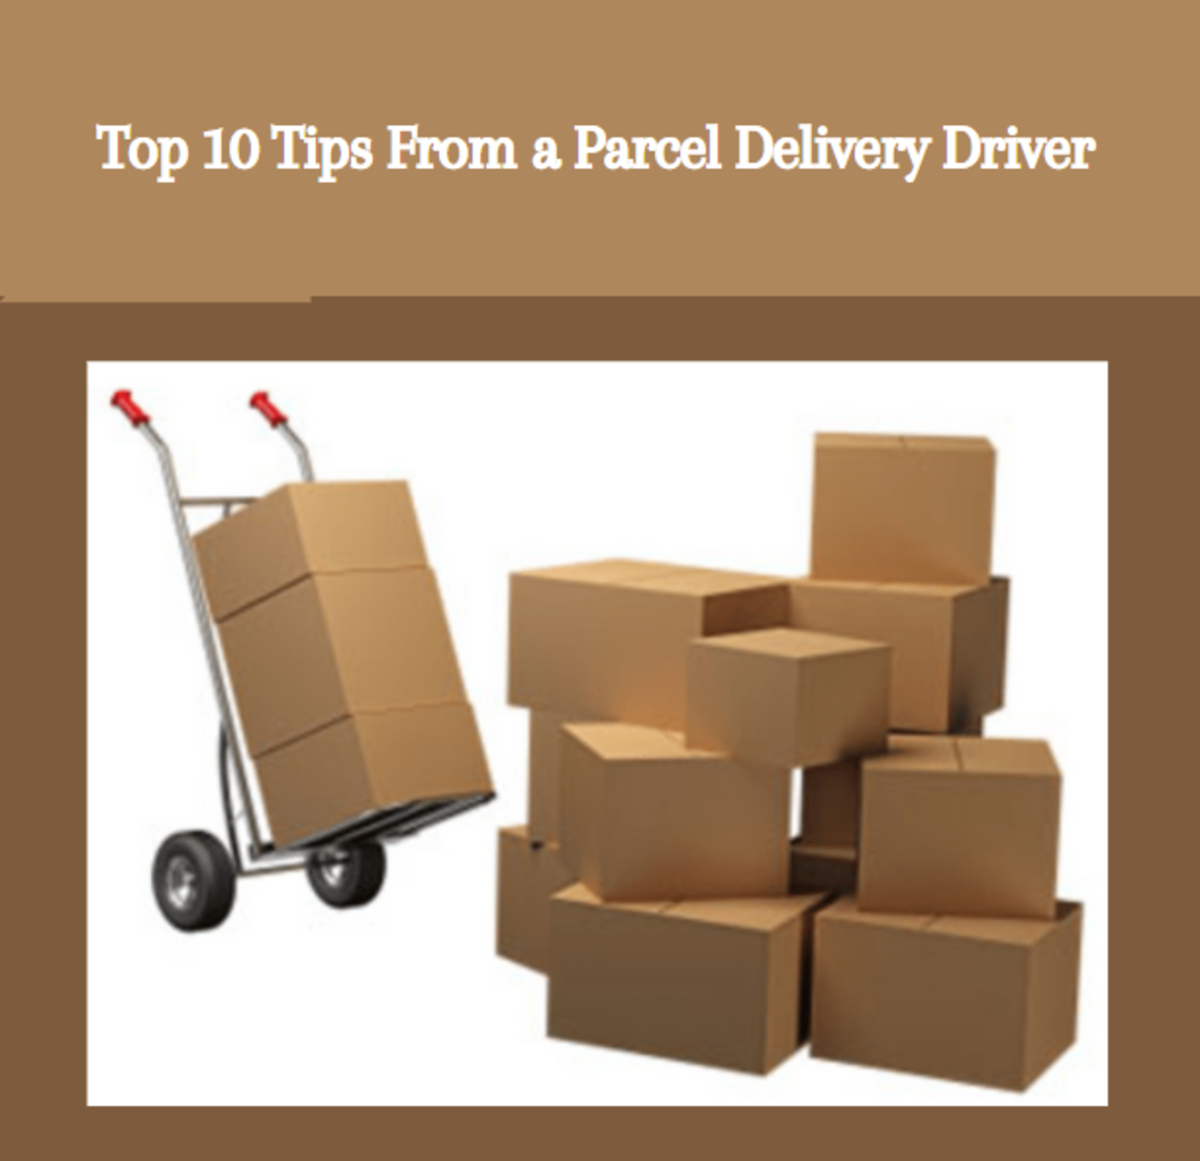 Top 10 Tips From a Parcel Delivery Driver.